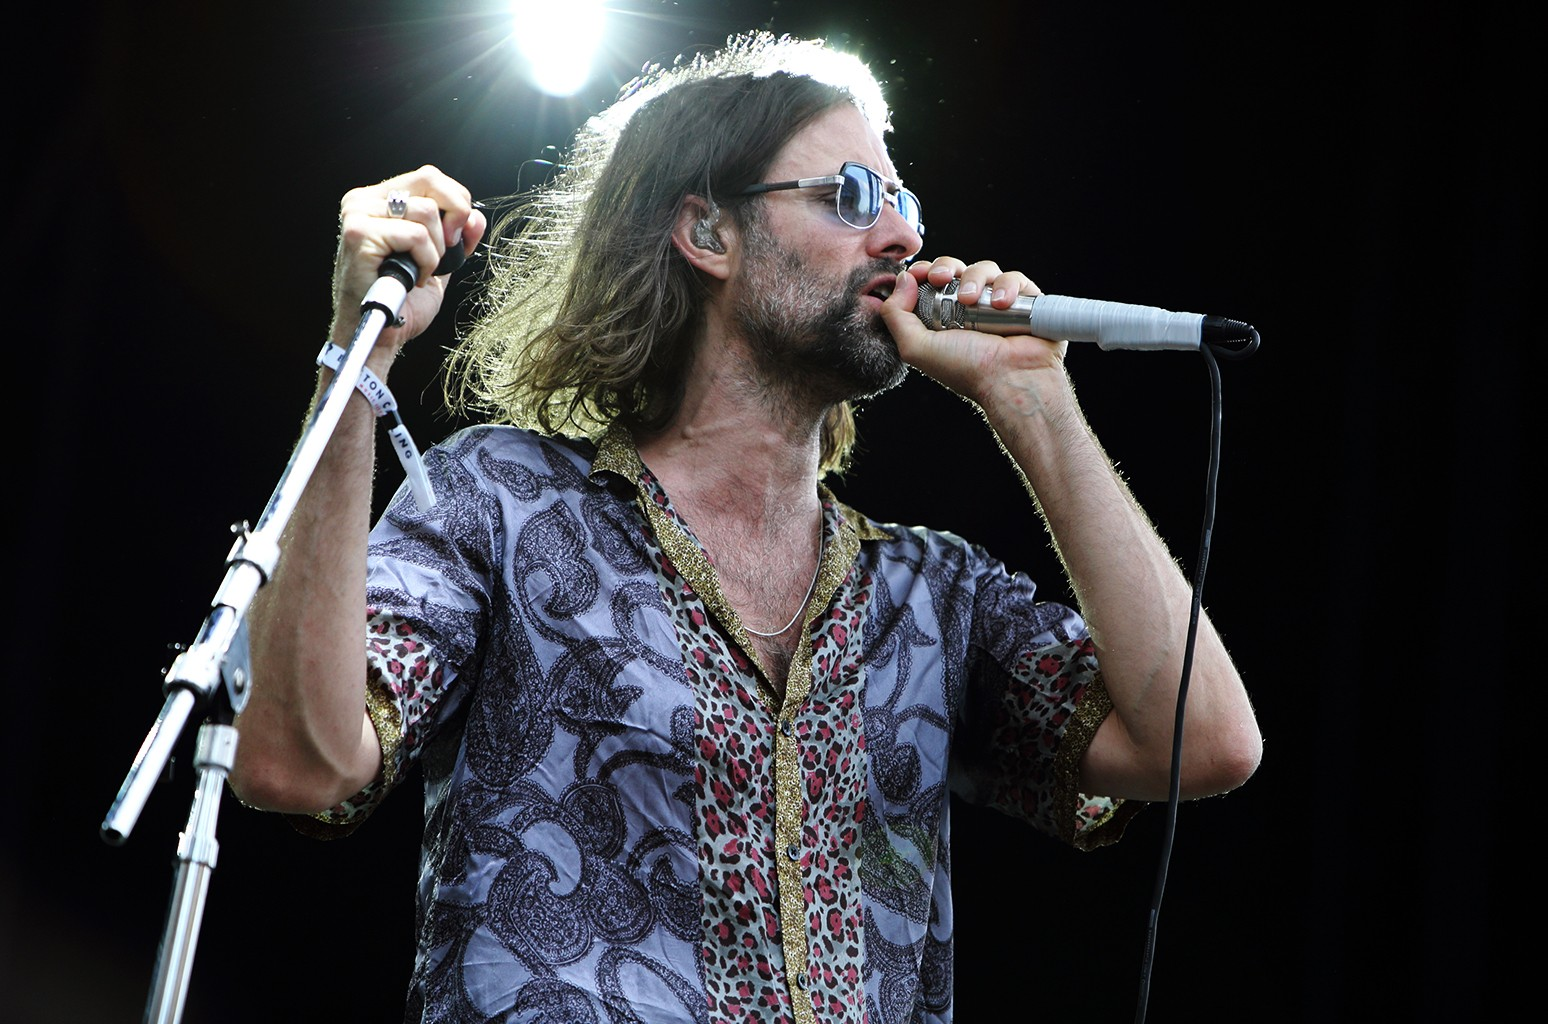 Andrew Wyatt of Miike Snow performs at Boston Calling festival at Boston City Hall Plaza on May 28, 2016 in Boston.